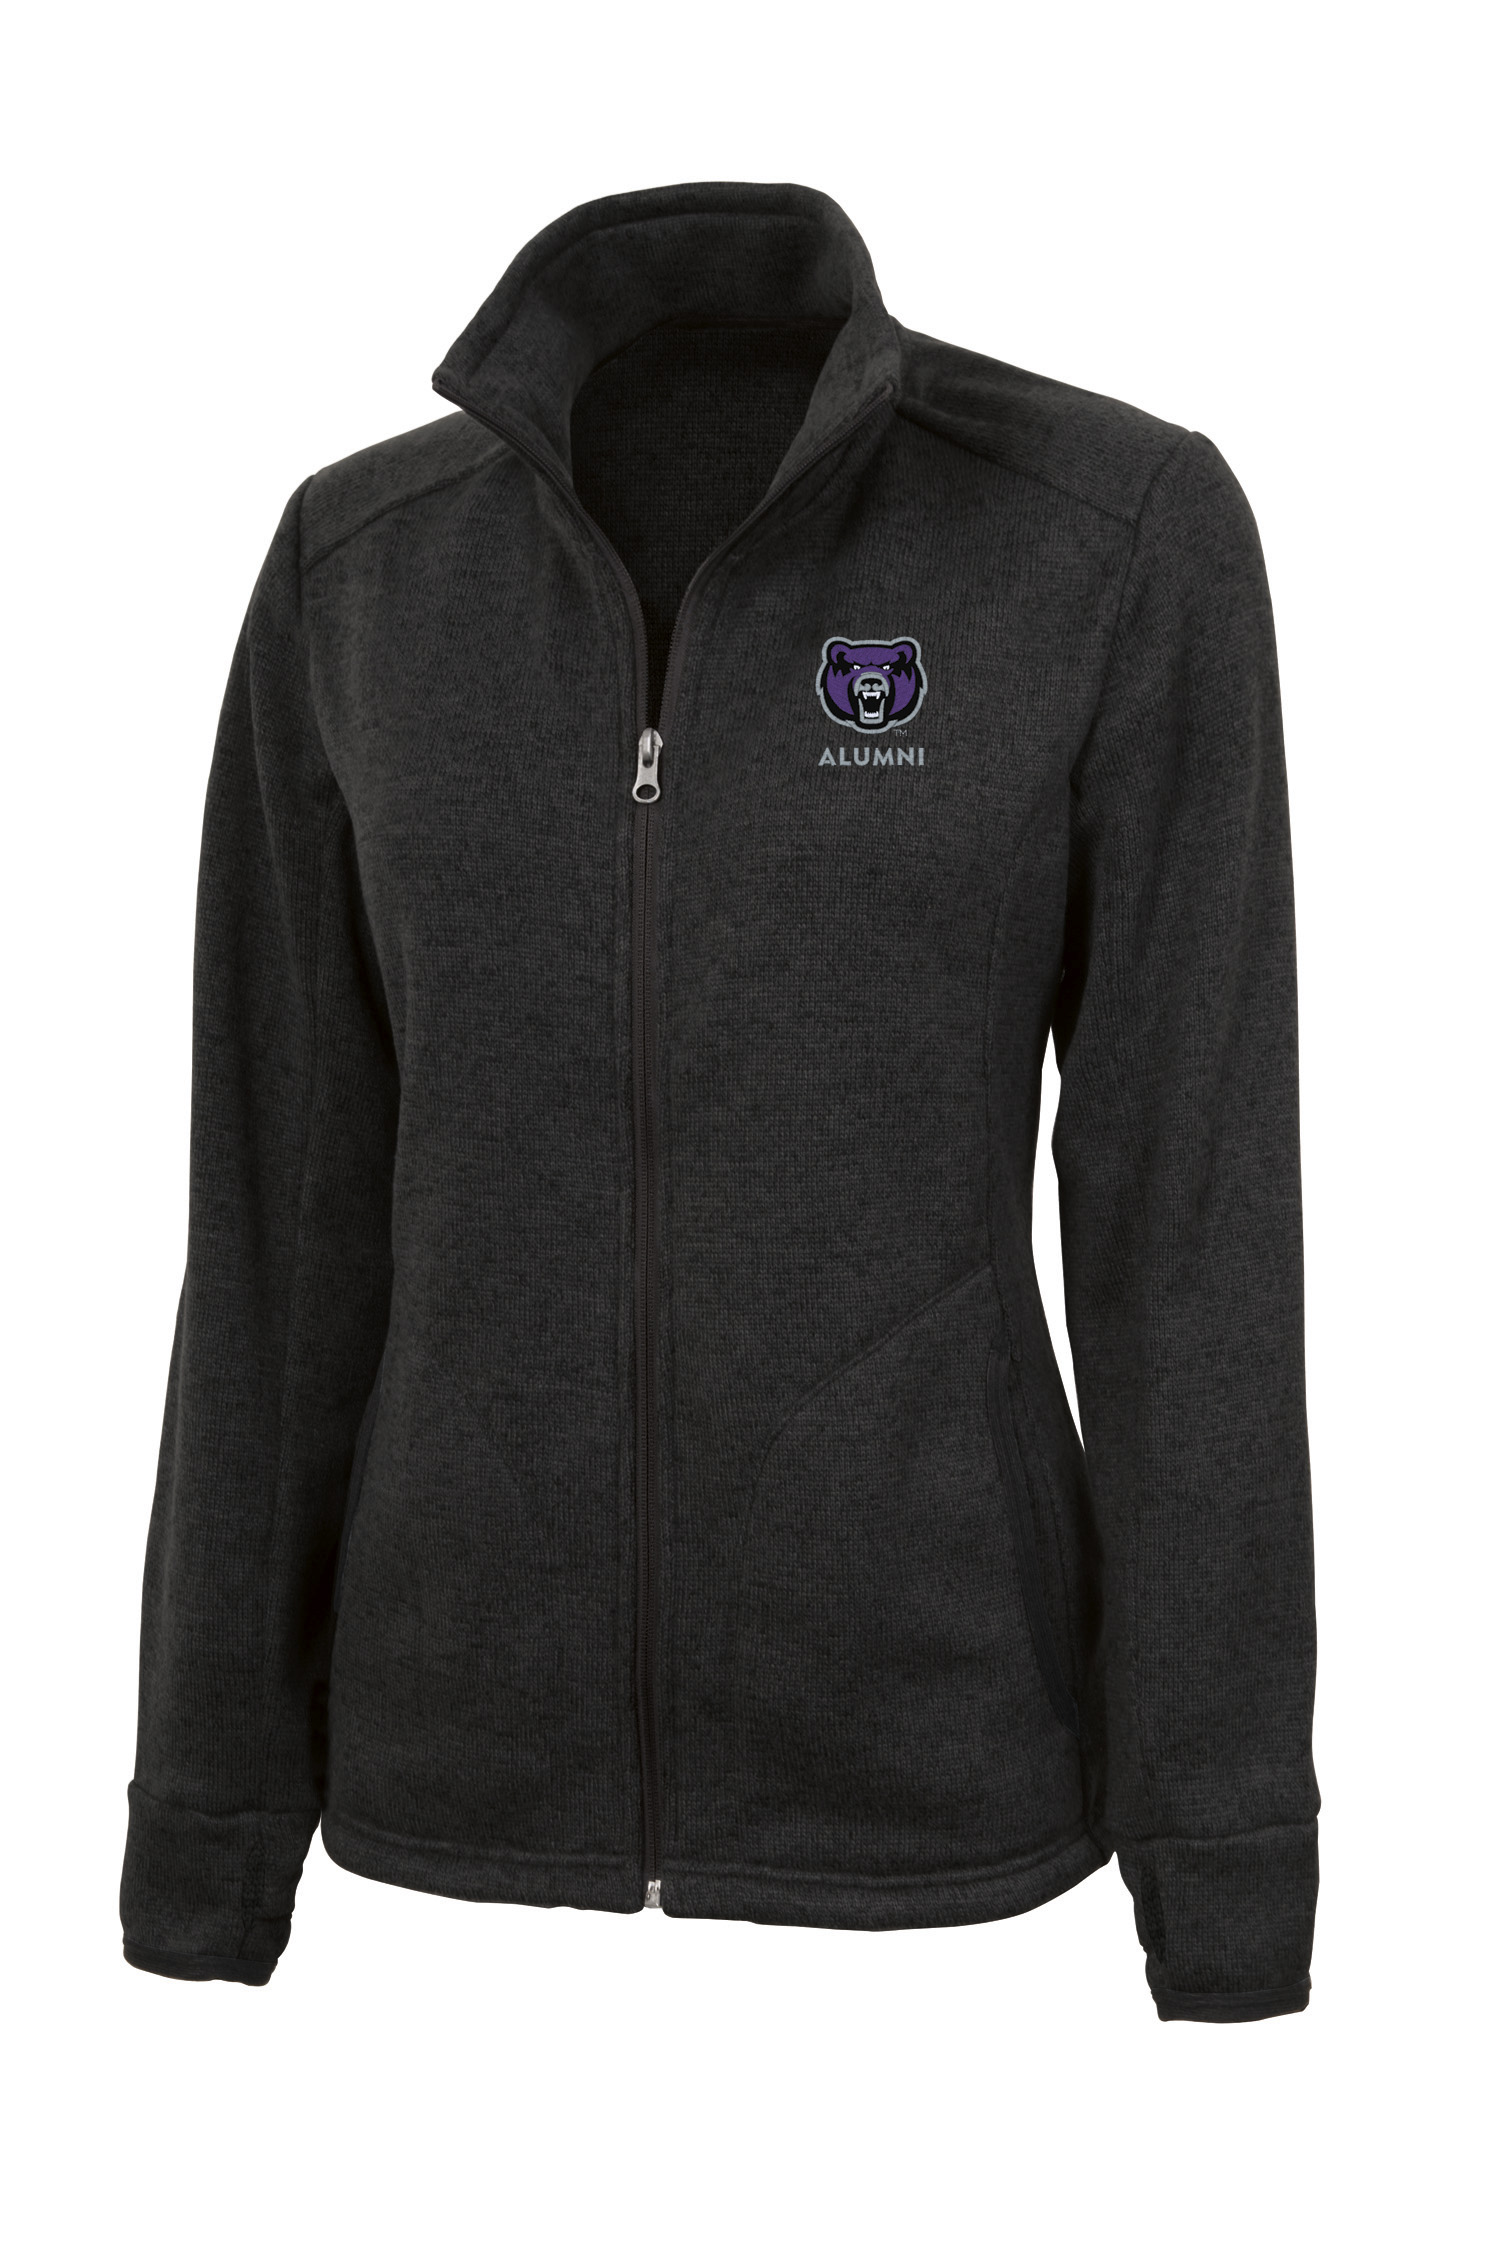 Women's Alumni Heathered Fleece Jacket